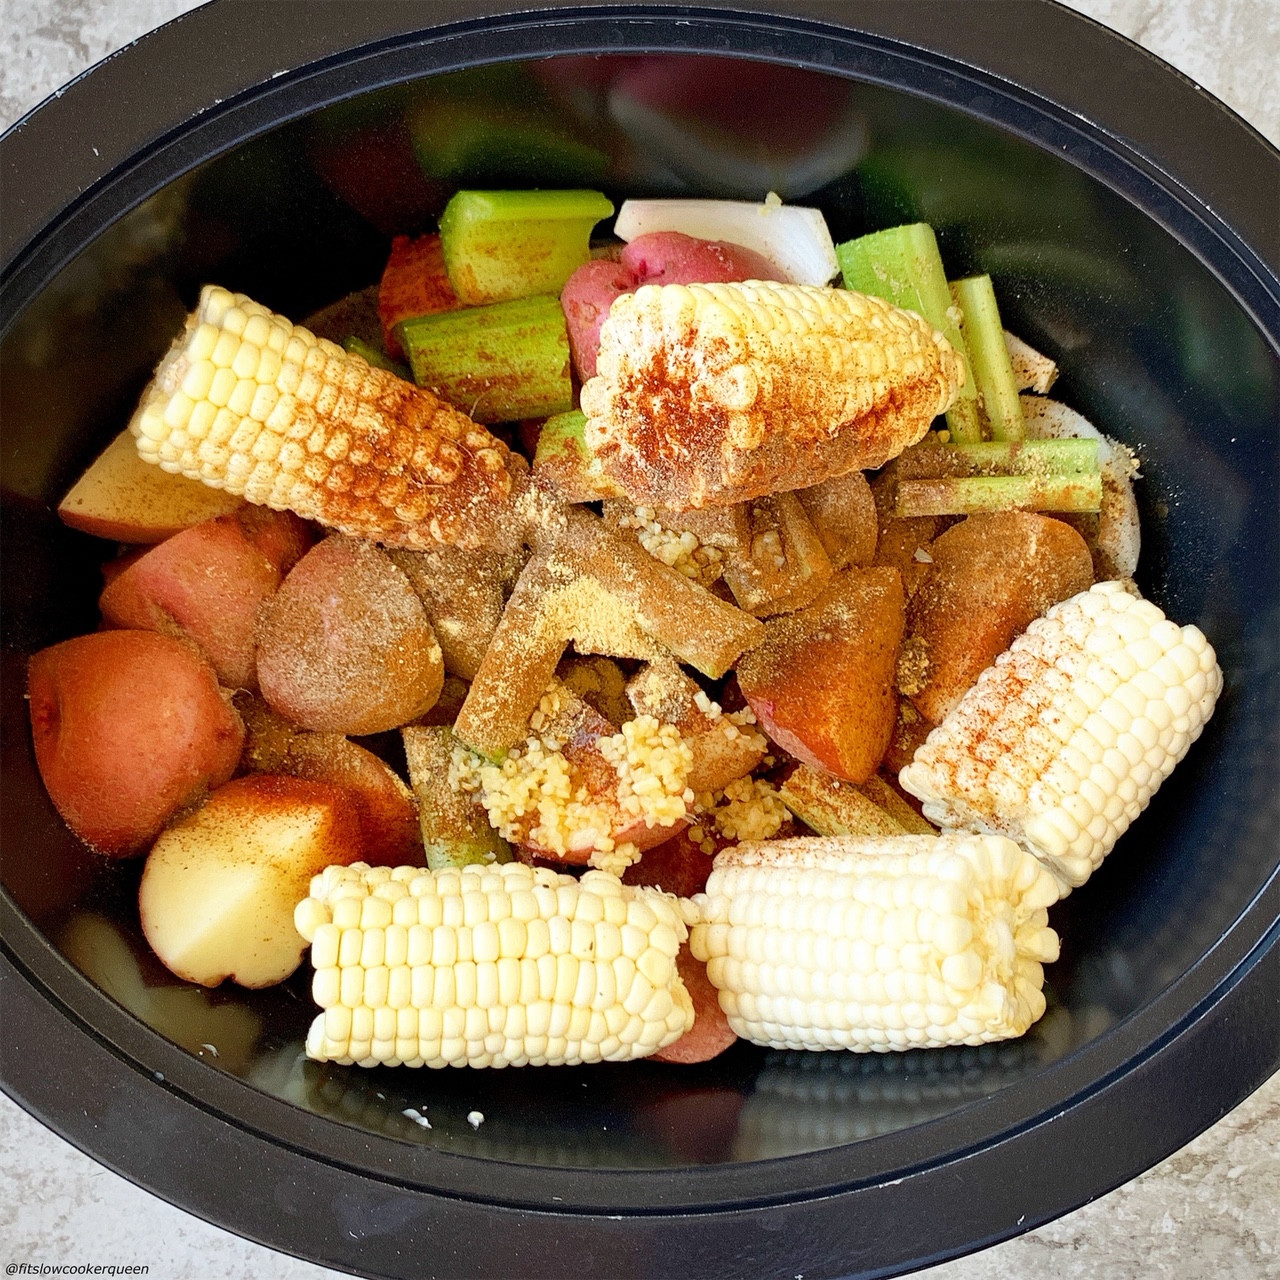 homemade old bay seasonings in the slow cooker with corn, potatoes, celery, and sausage